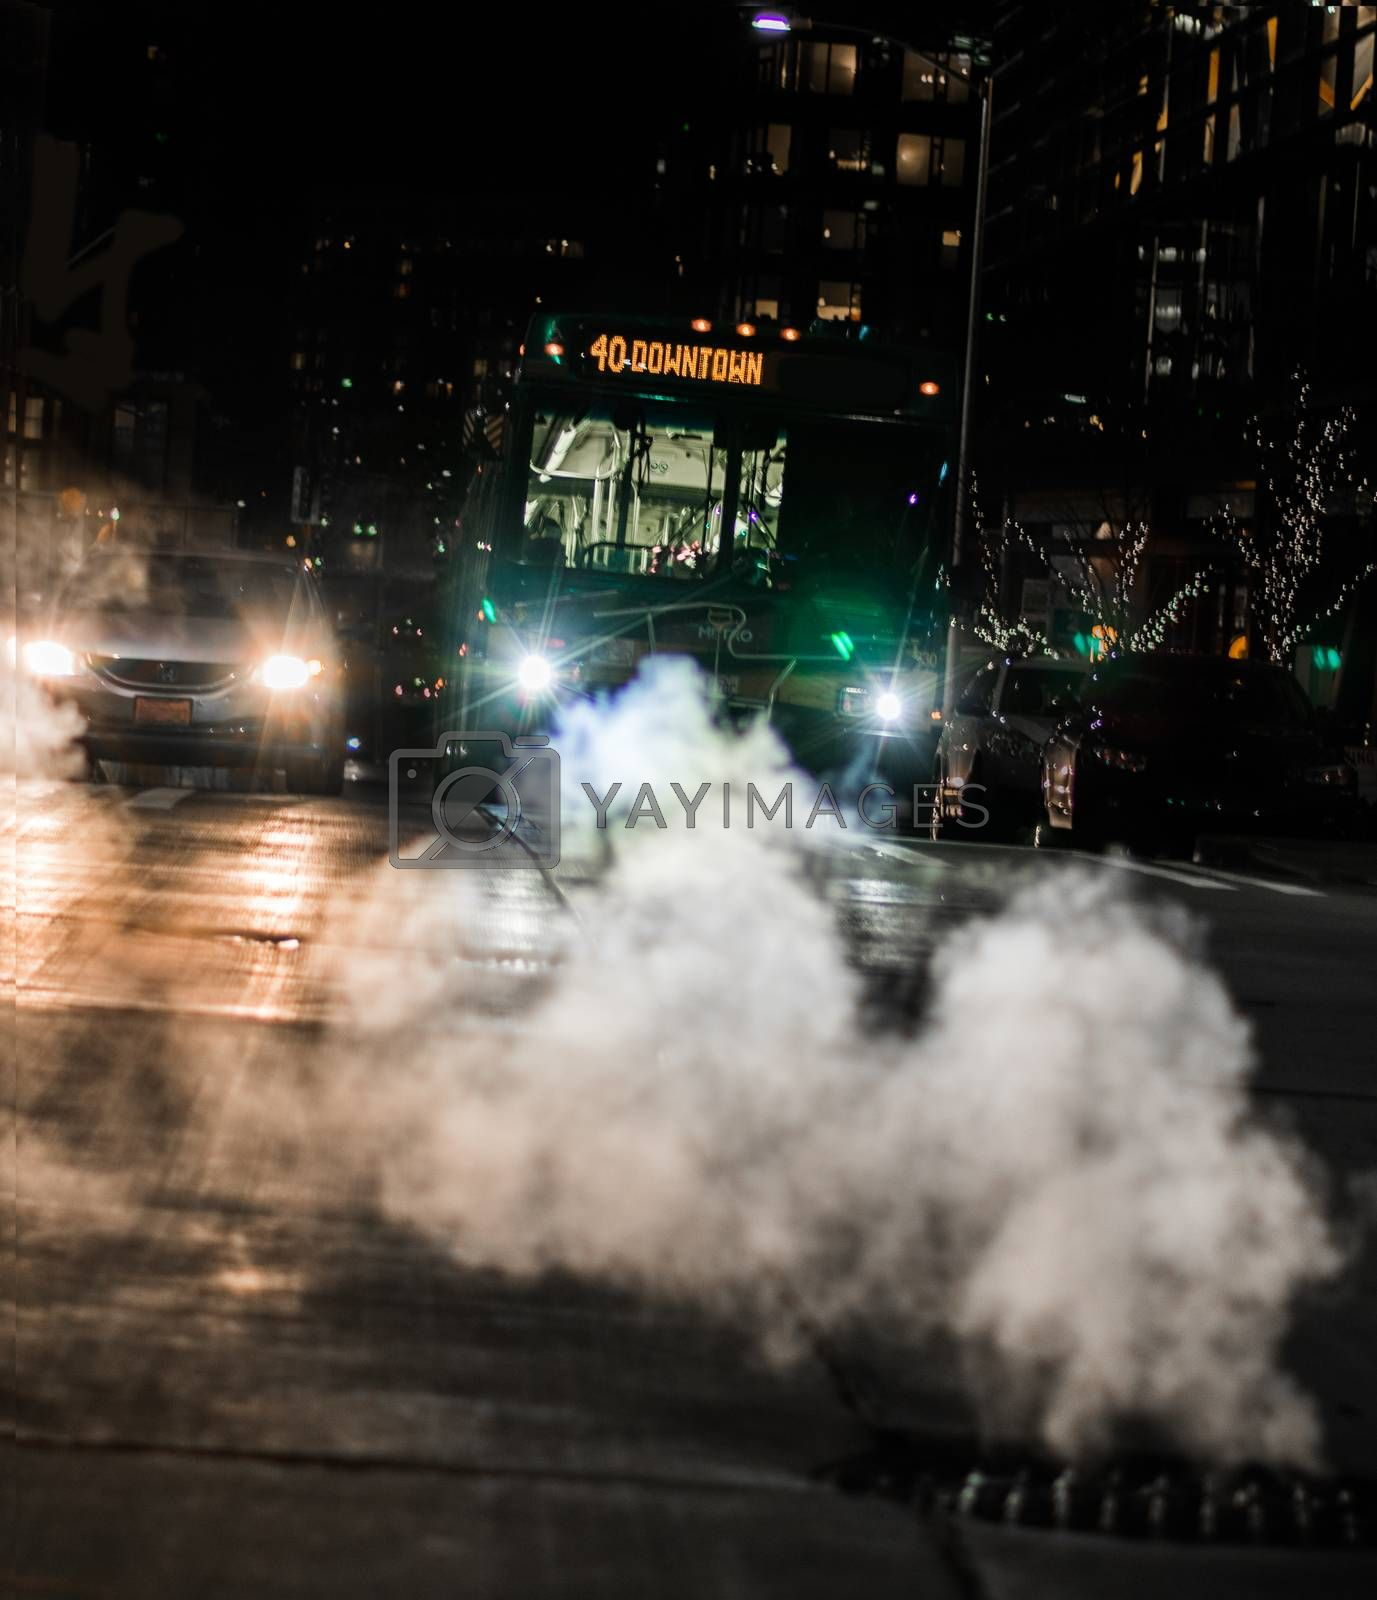 Bus and car at intersection with steam rising from a sewer